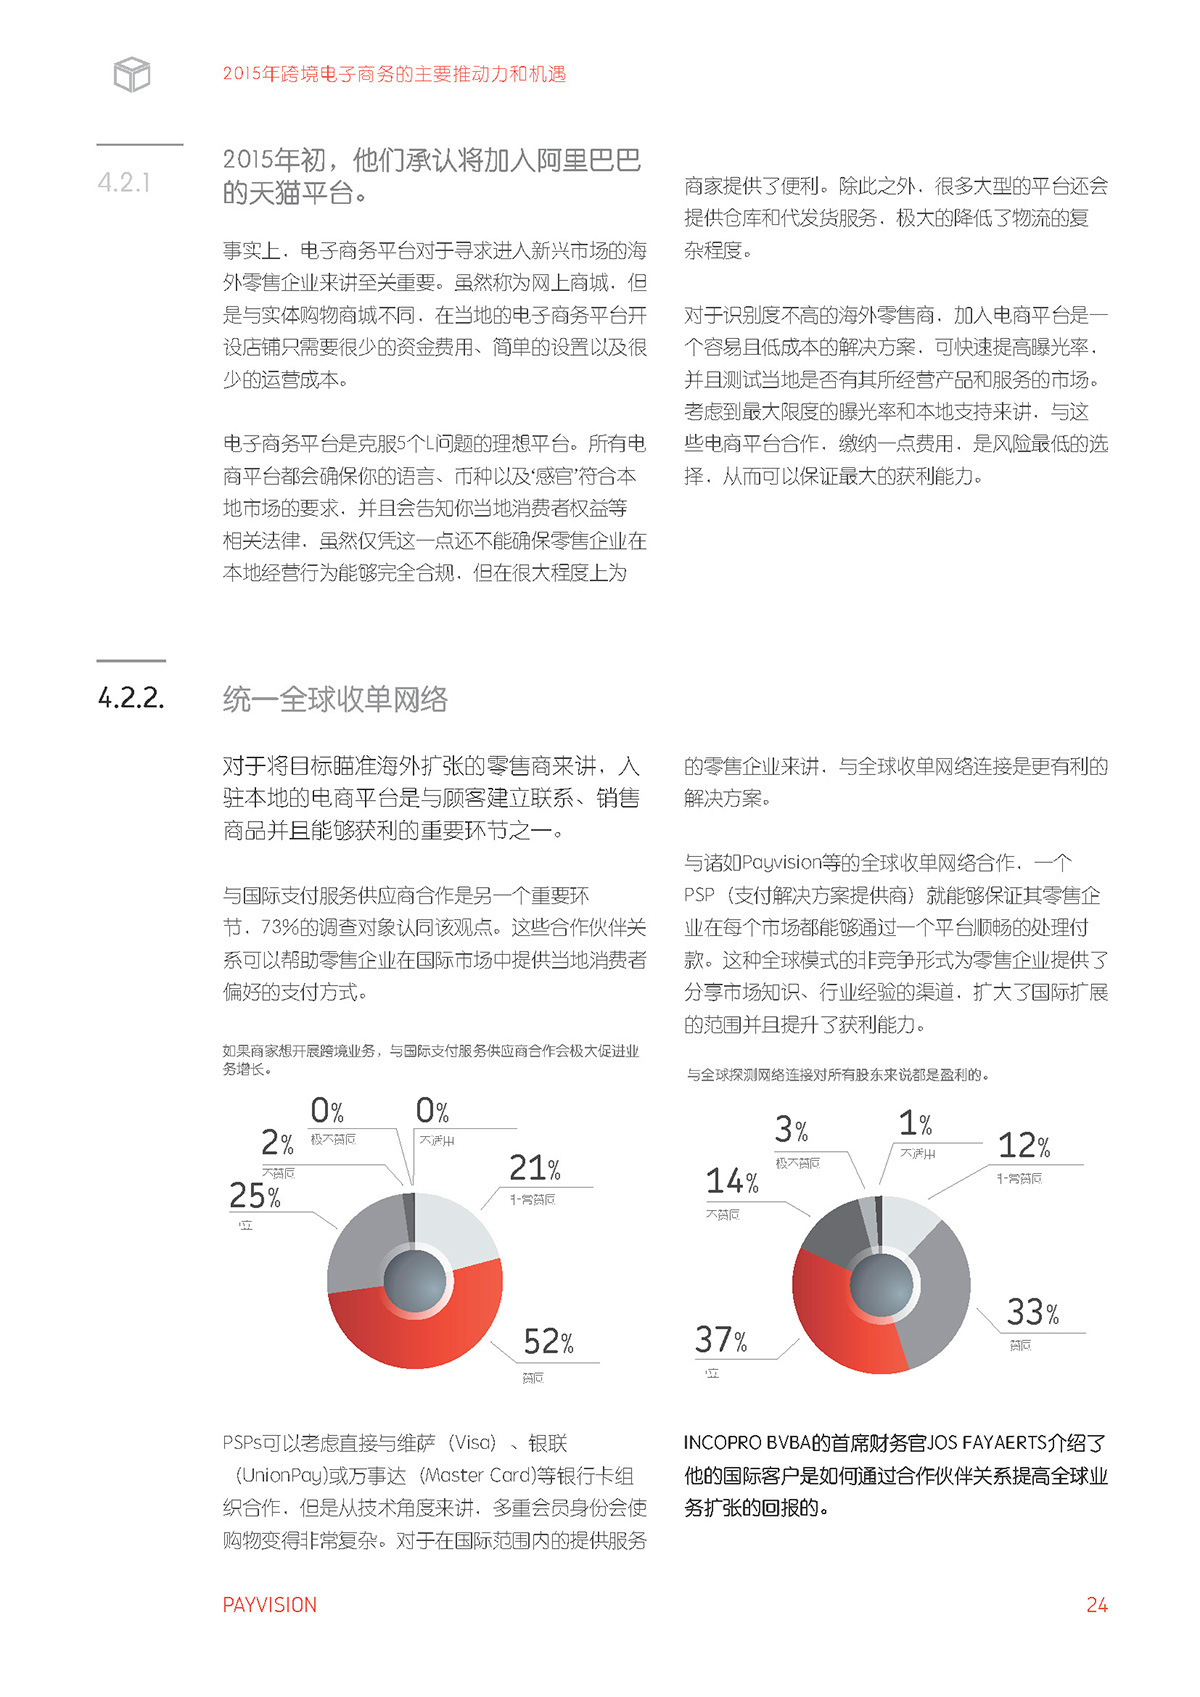 vormgevingwhite paper key business drivers chinees